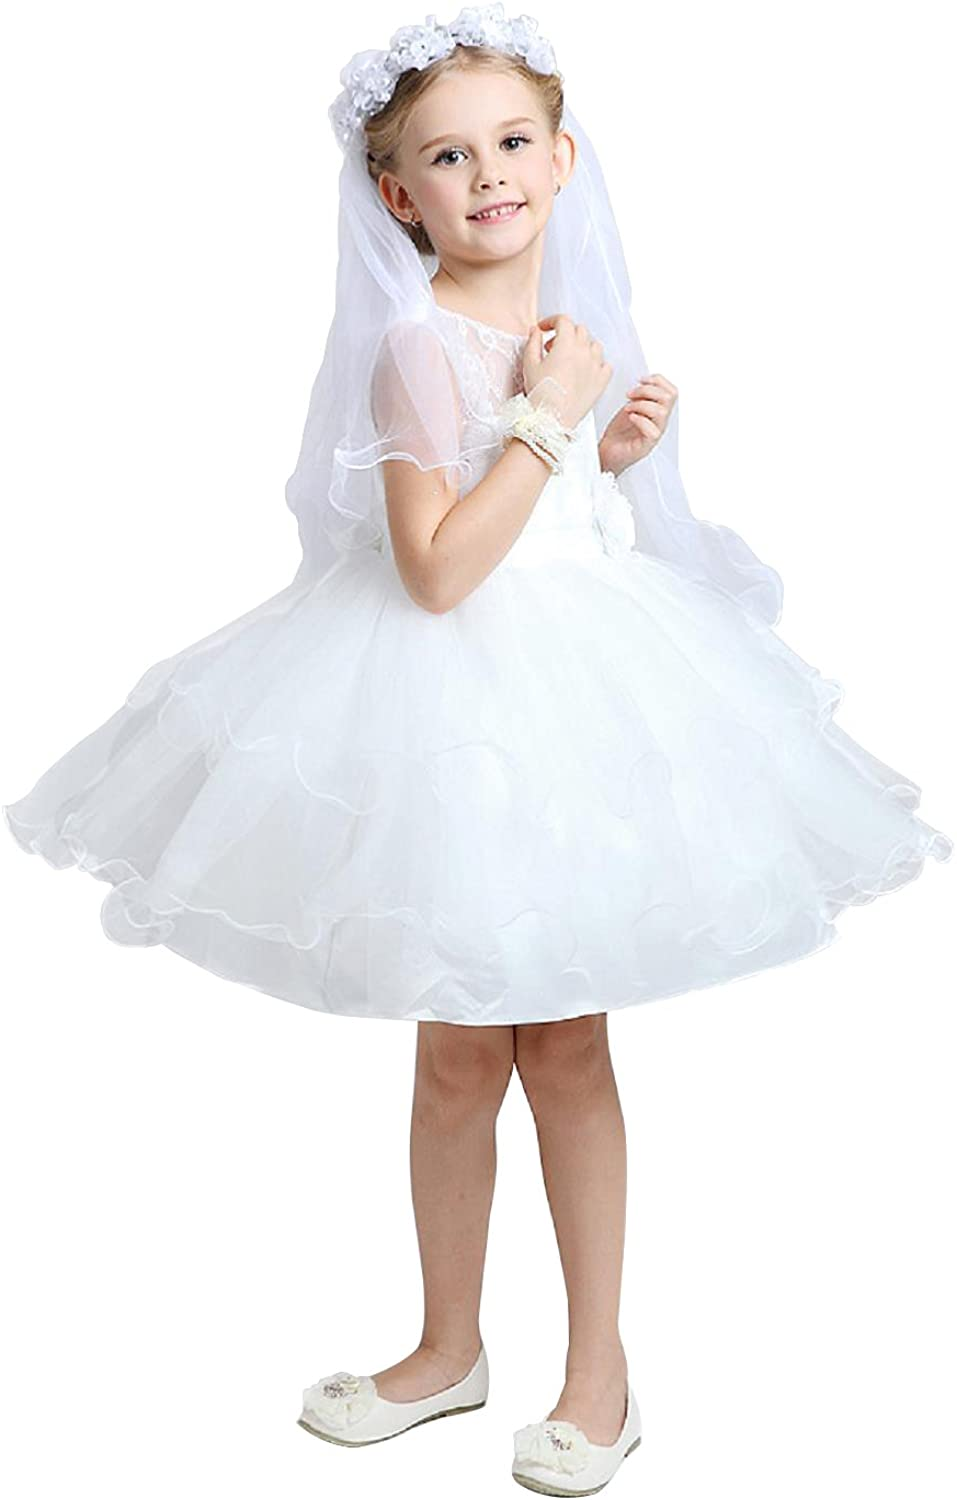 Veil Children' s Outstanding White Gilrs Hair Accessorie Two Layer